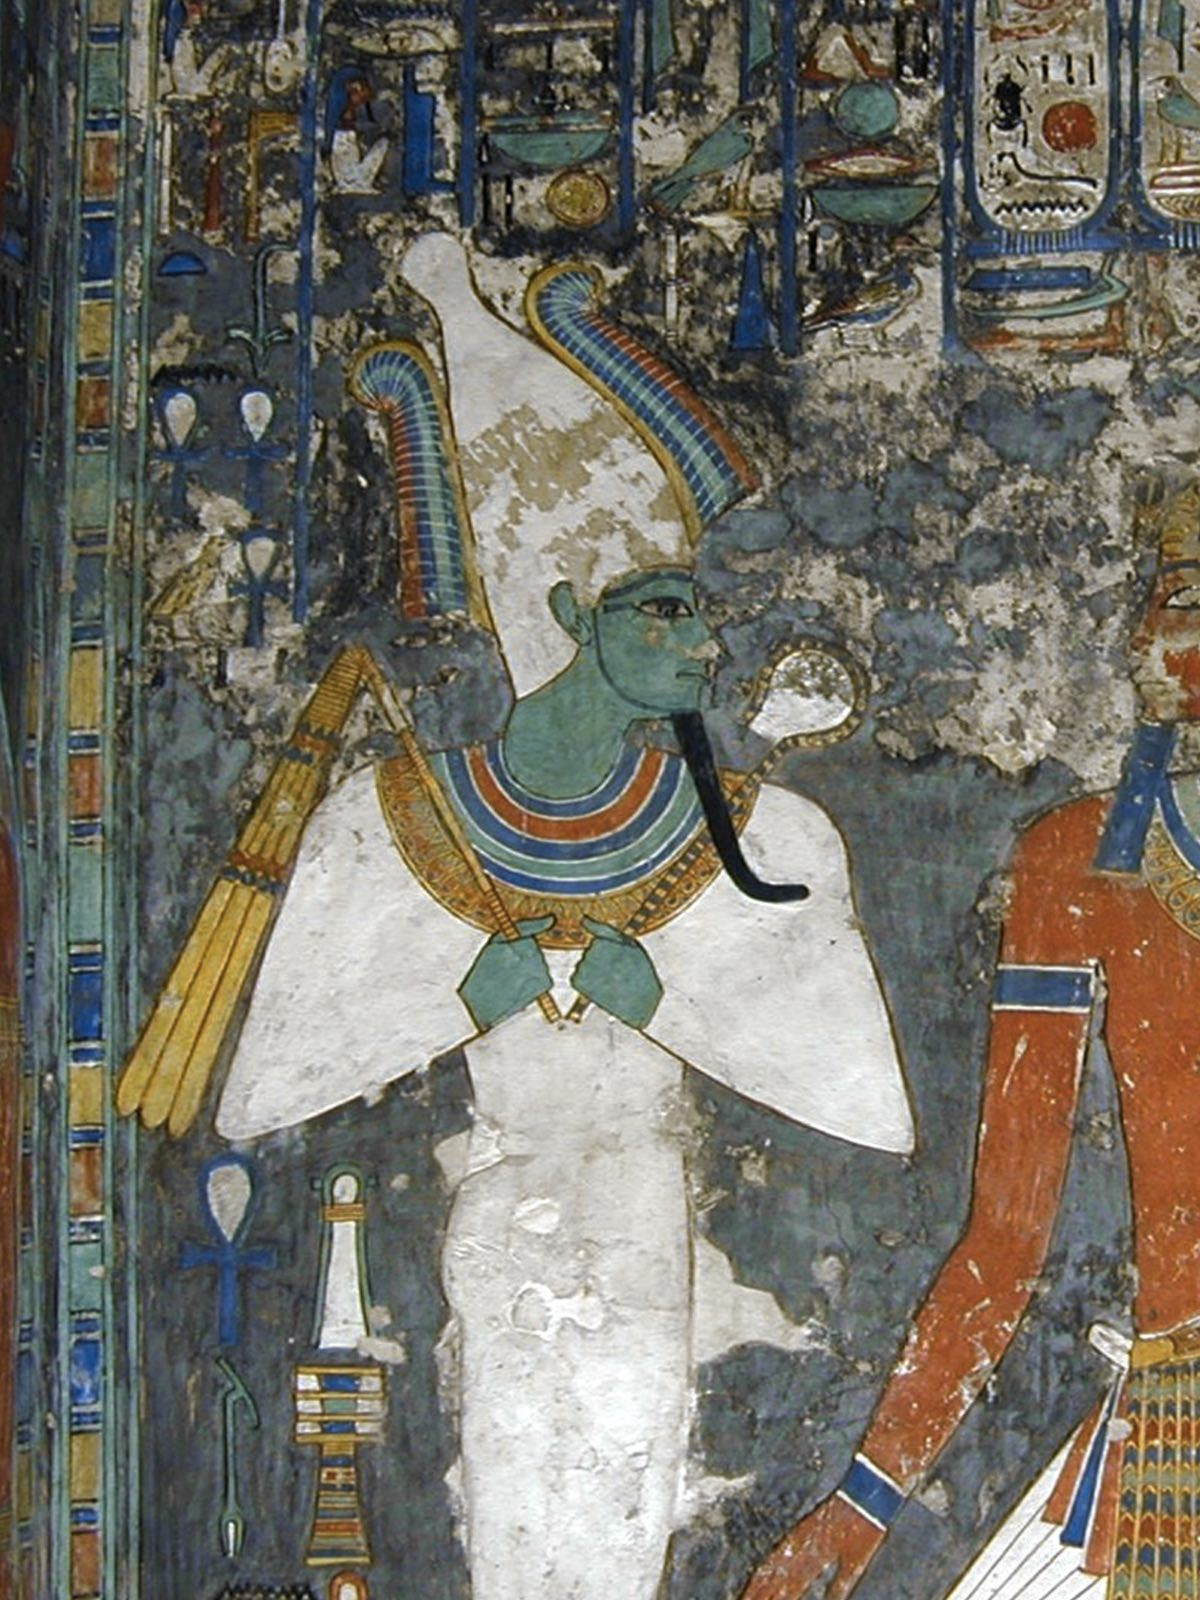 Osiris was usually depicted with green skin (credit: dalbera/wiki)